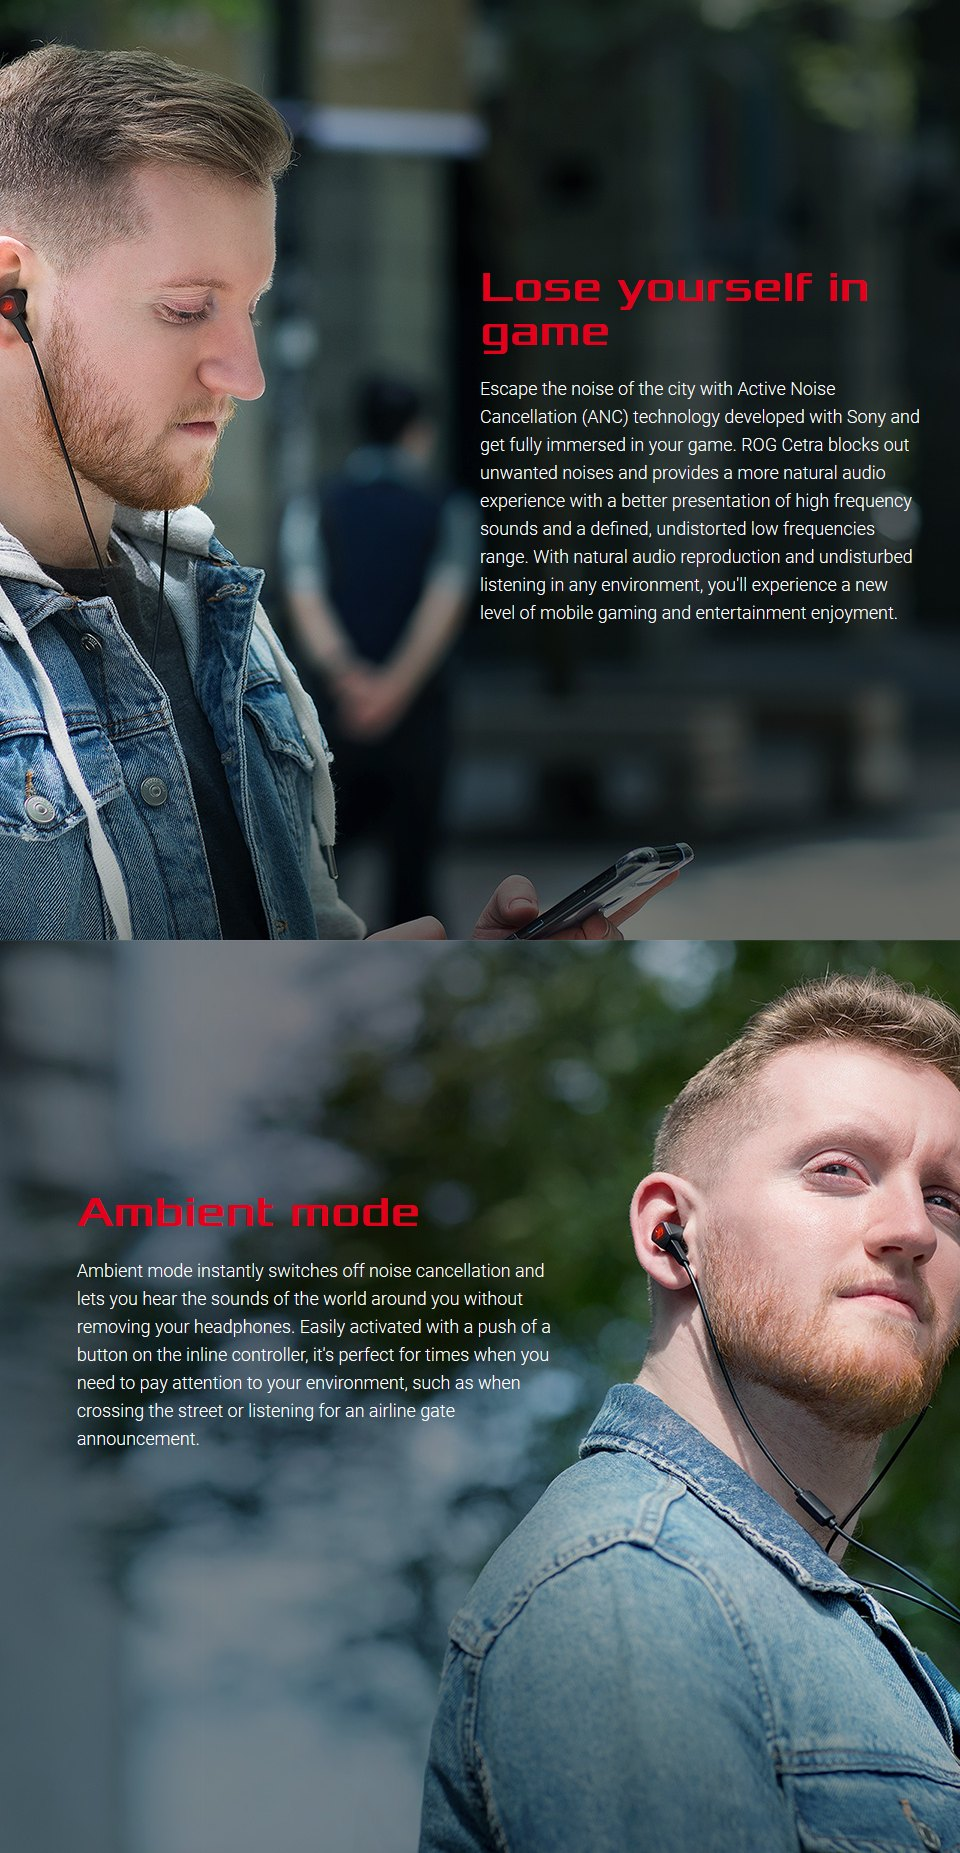 ASUS ROG Cetra In-Ear USB-C Headphones with ANC features 2